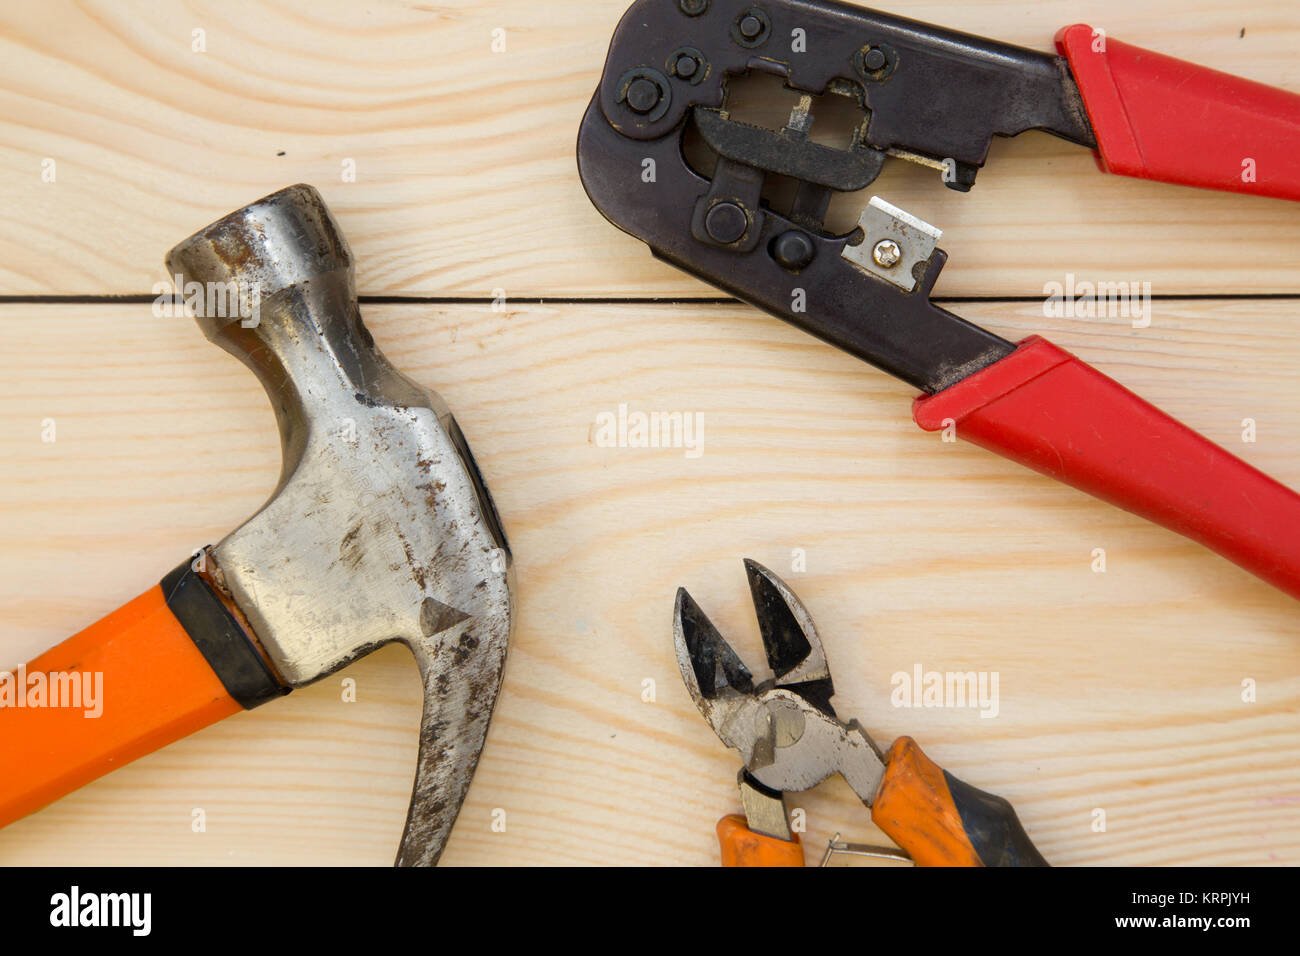 The House Of Hammer repairing a house. a set of repair tools- a hammer and